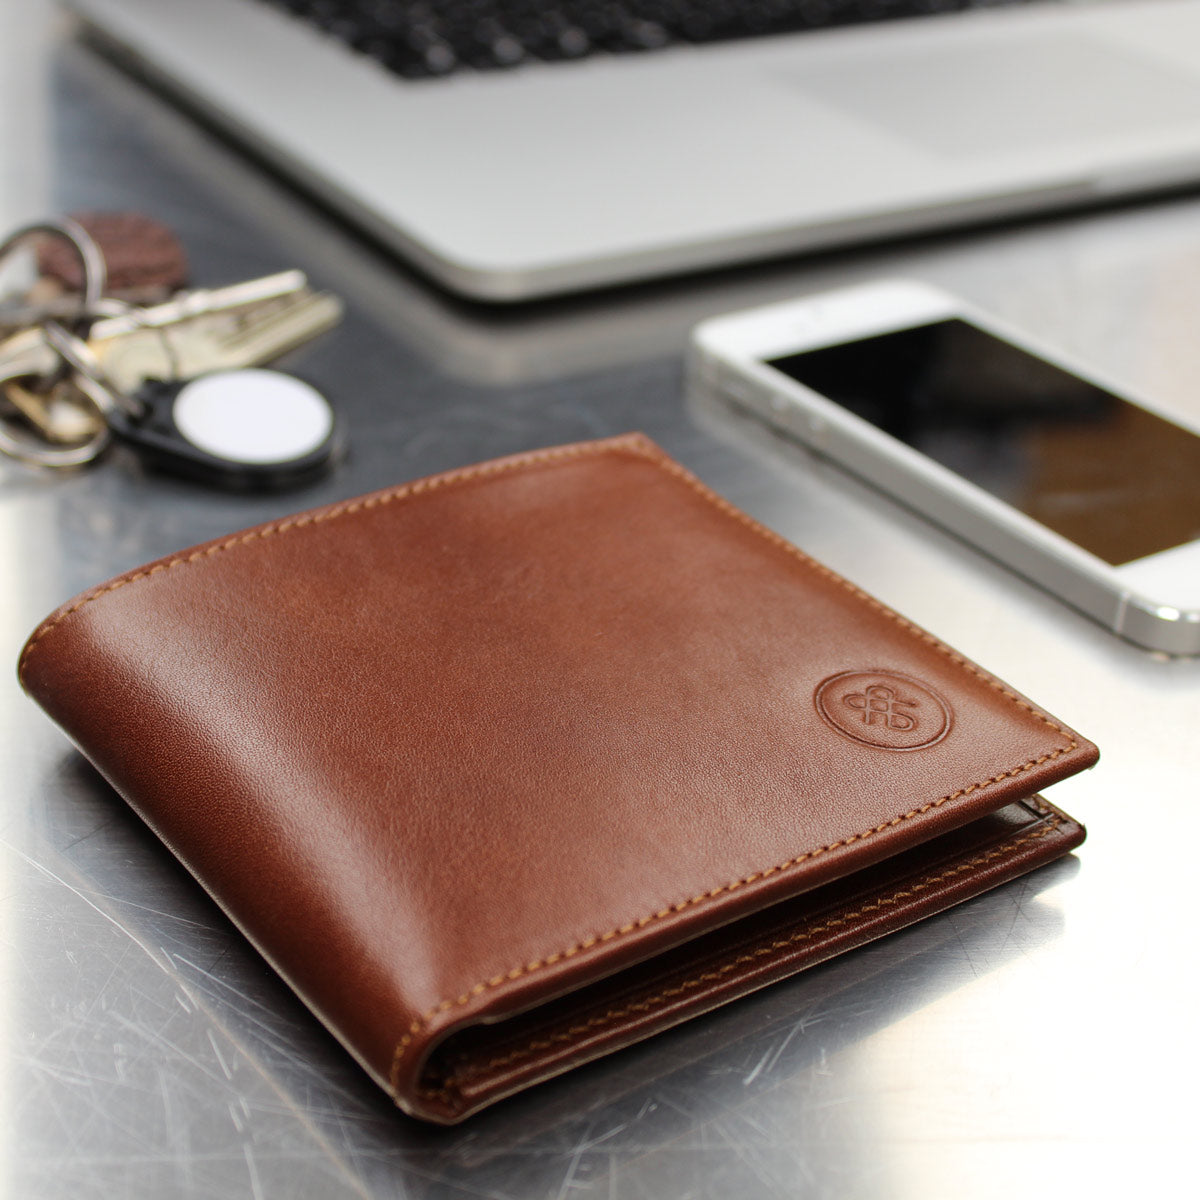 Image 7 of the 'Ticciano' Chestnut Veg-Tanned Leather Wallet with Coin Pocket